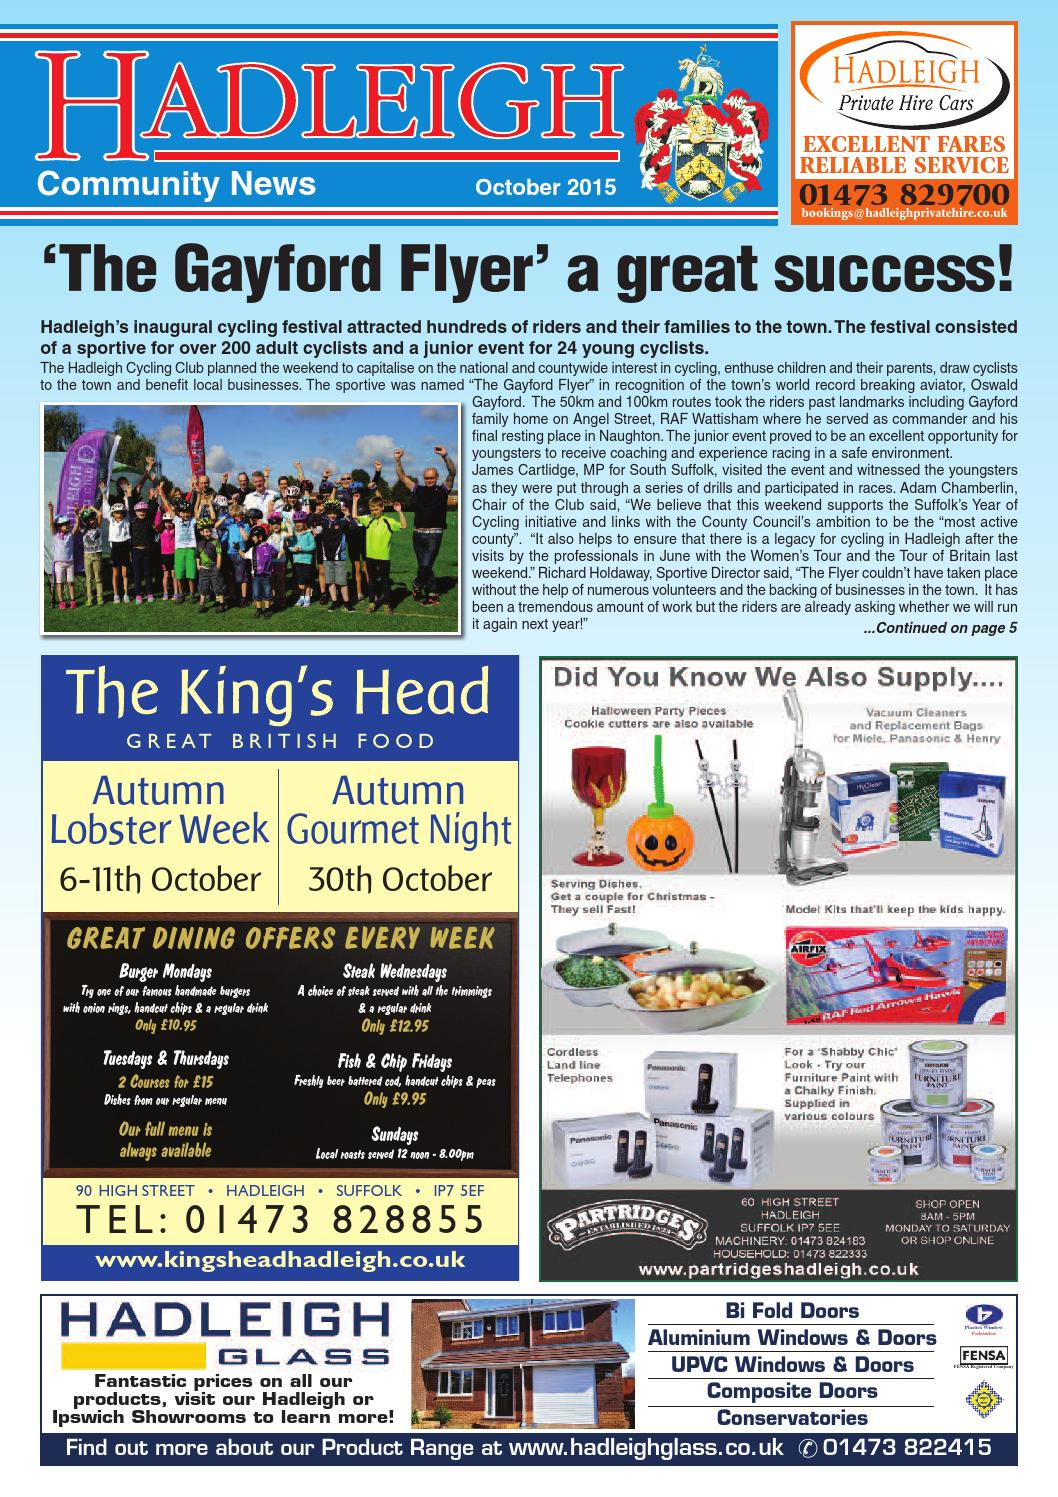 Hadleigh Community News, October 2015 by Keith Avis Printers - issuu